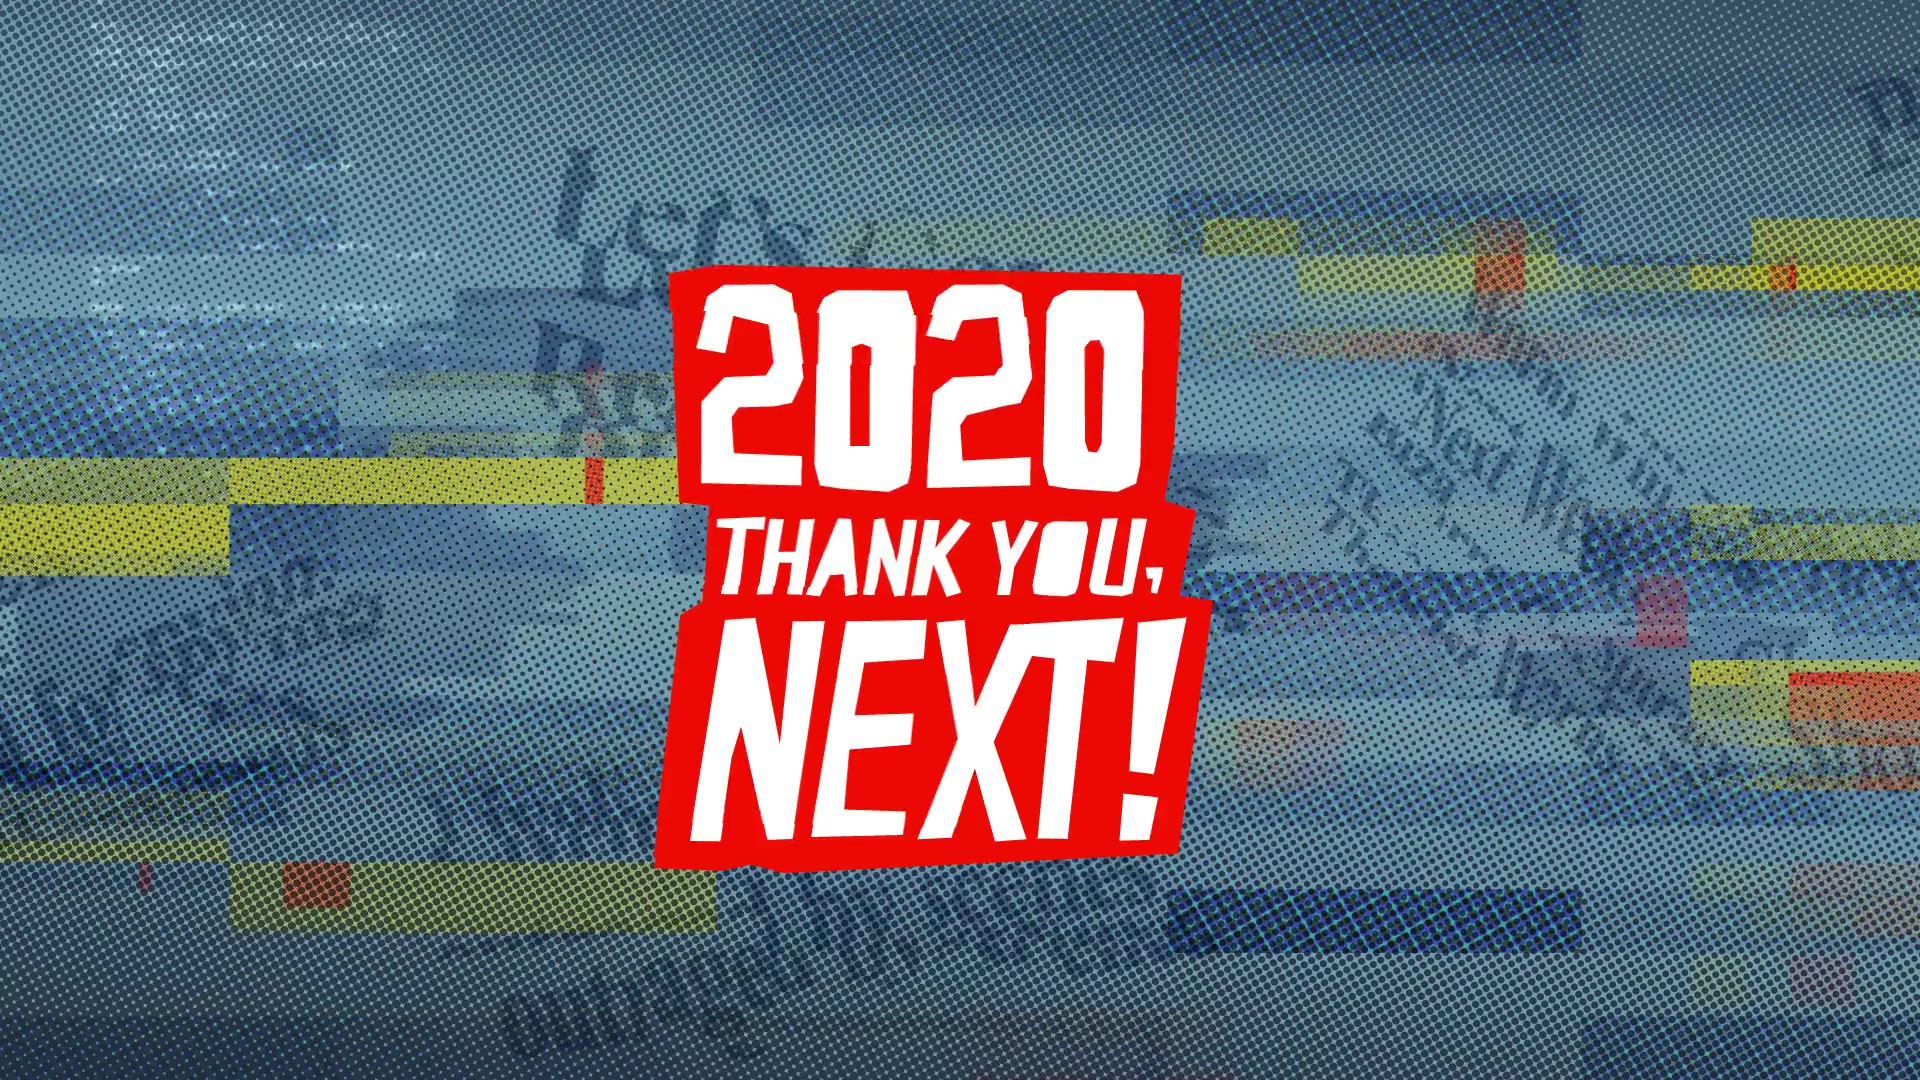 Cover image: 2020 Thank You Next